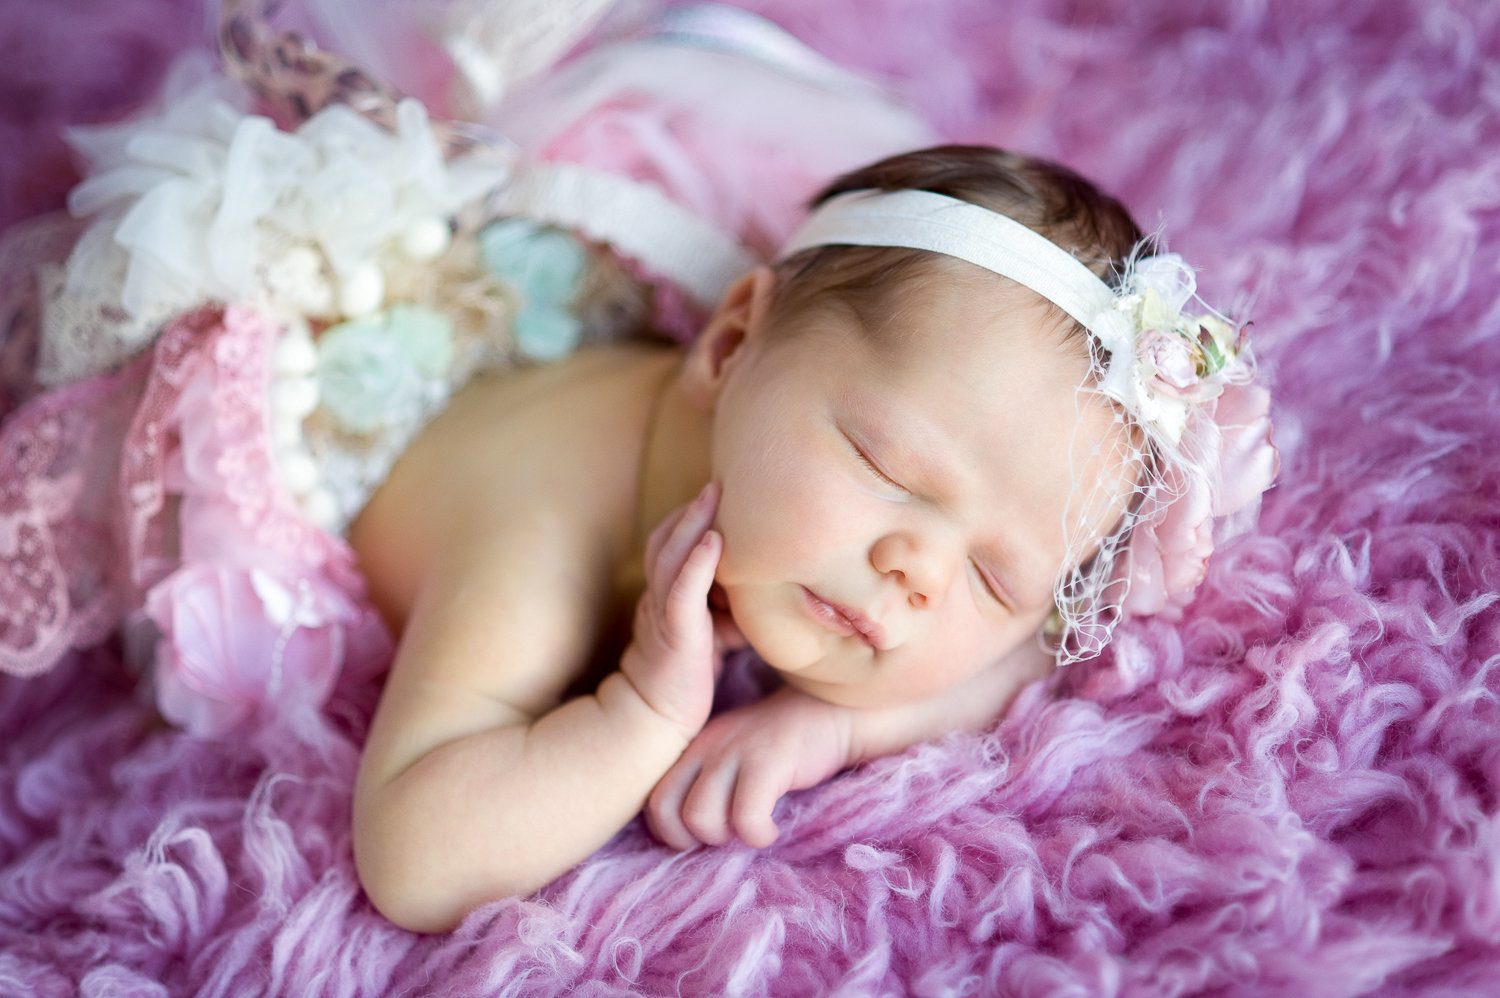 newborn with pink tutu and matching headband and pink flokati rug